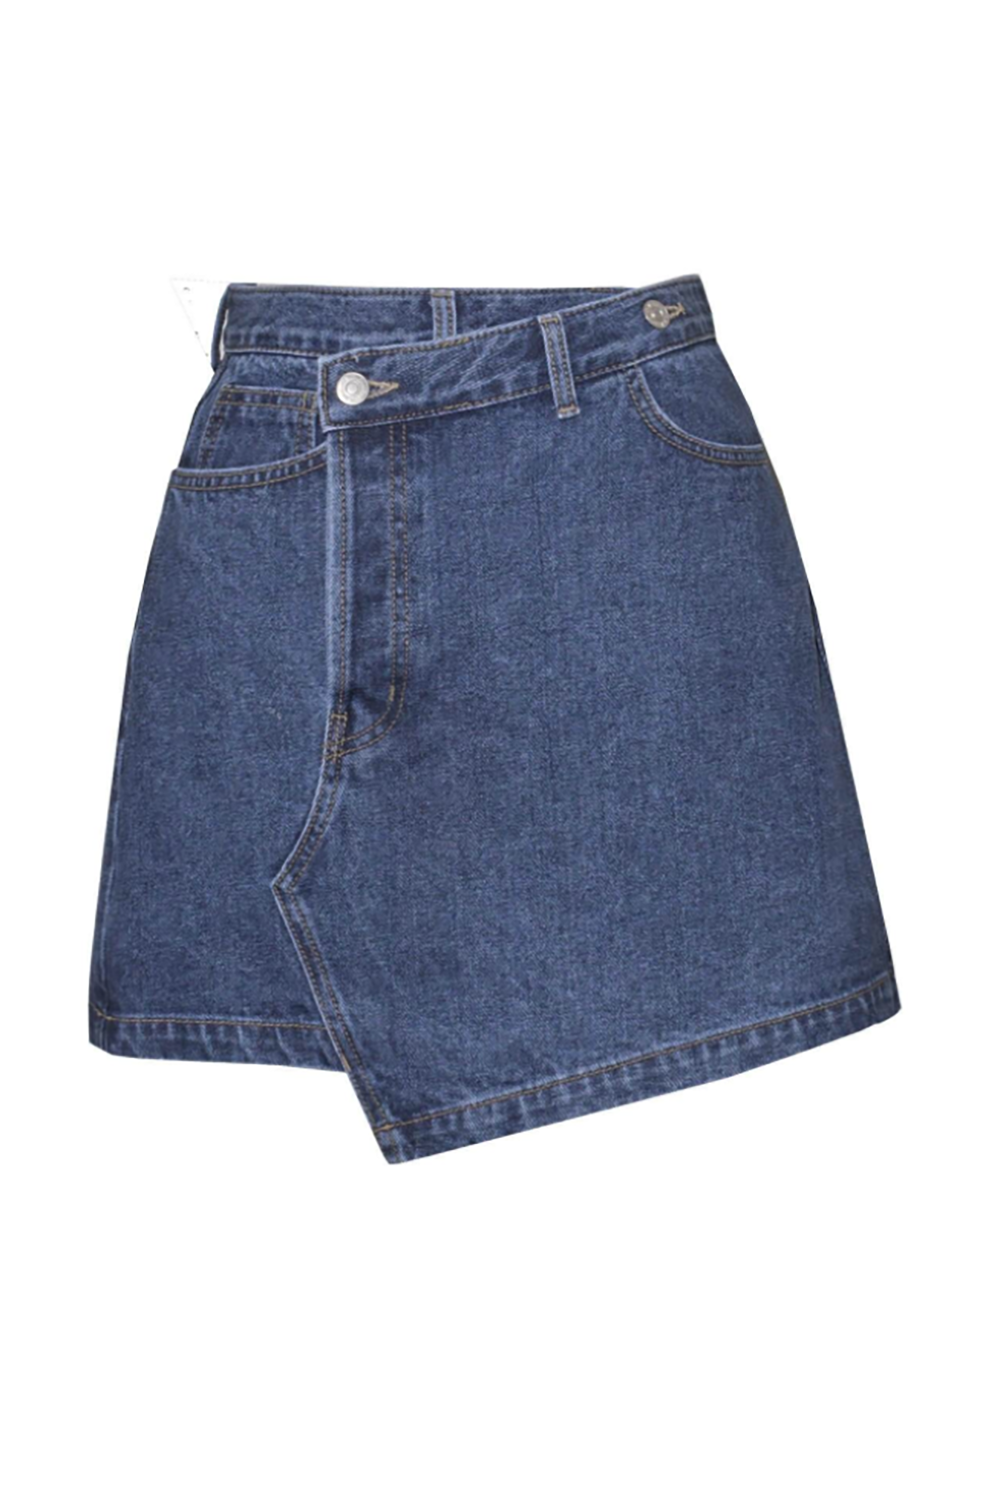 A Deconstructed Miniskirt Pixie Market pixiemarket.com $99.00 SHOP IT Instead of buying another denim miniskirt with a regular button and cut, pick up this deconstructed one from Pixie Market. The slight shift in asymmetrical details instantly give this item a cool factor.